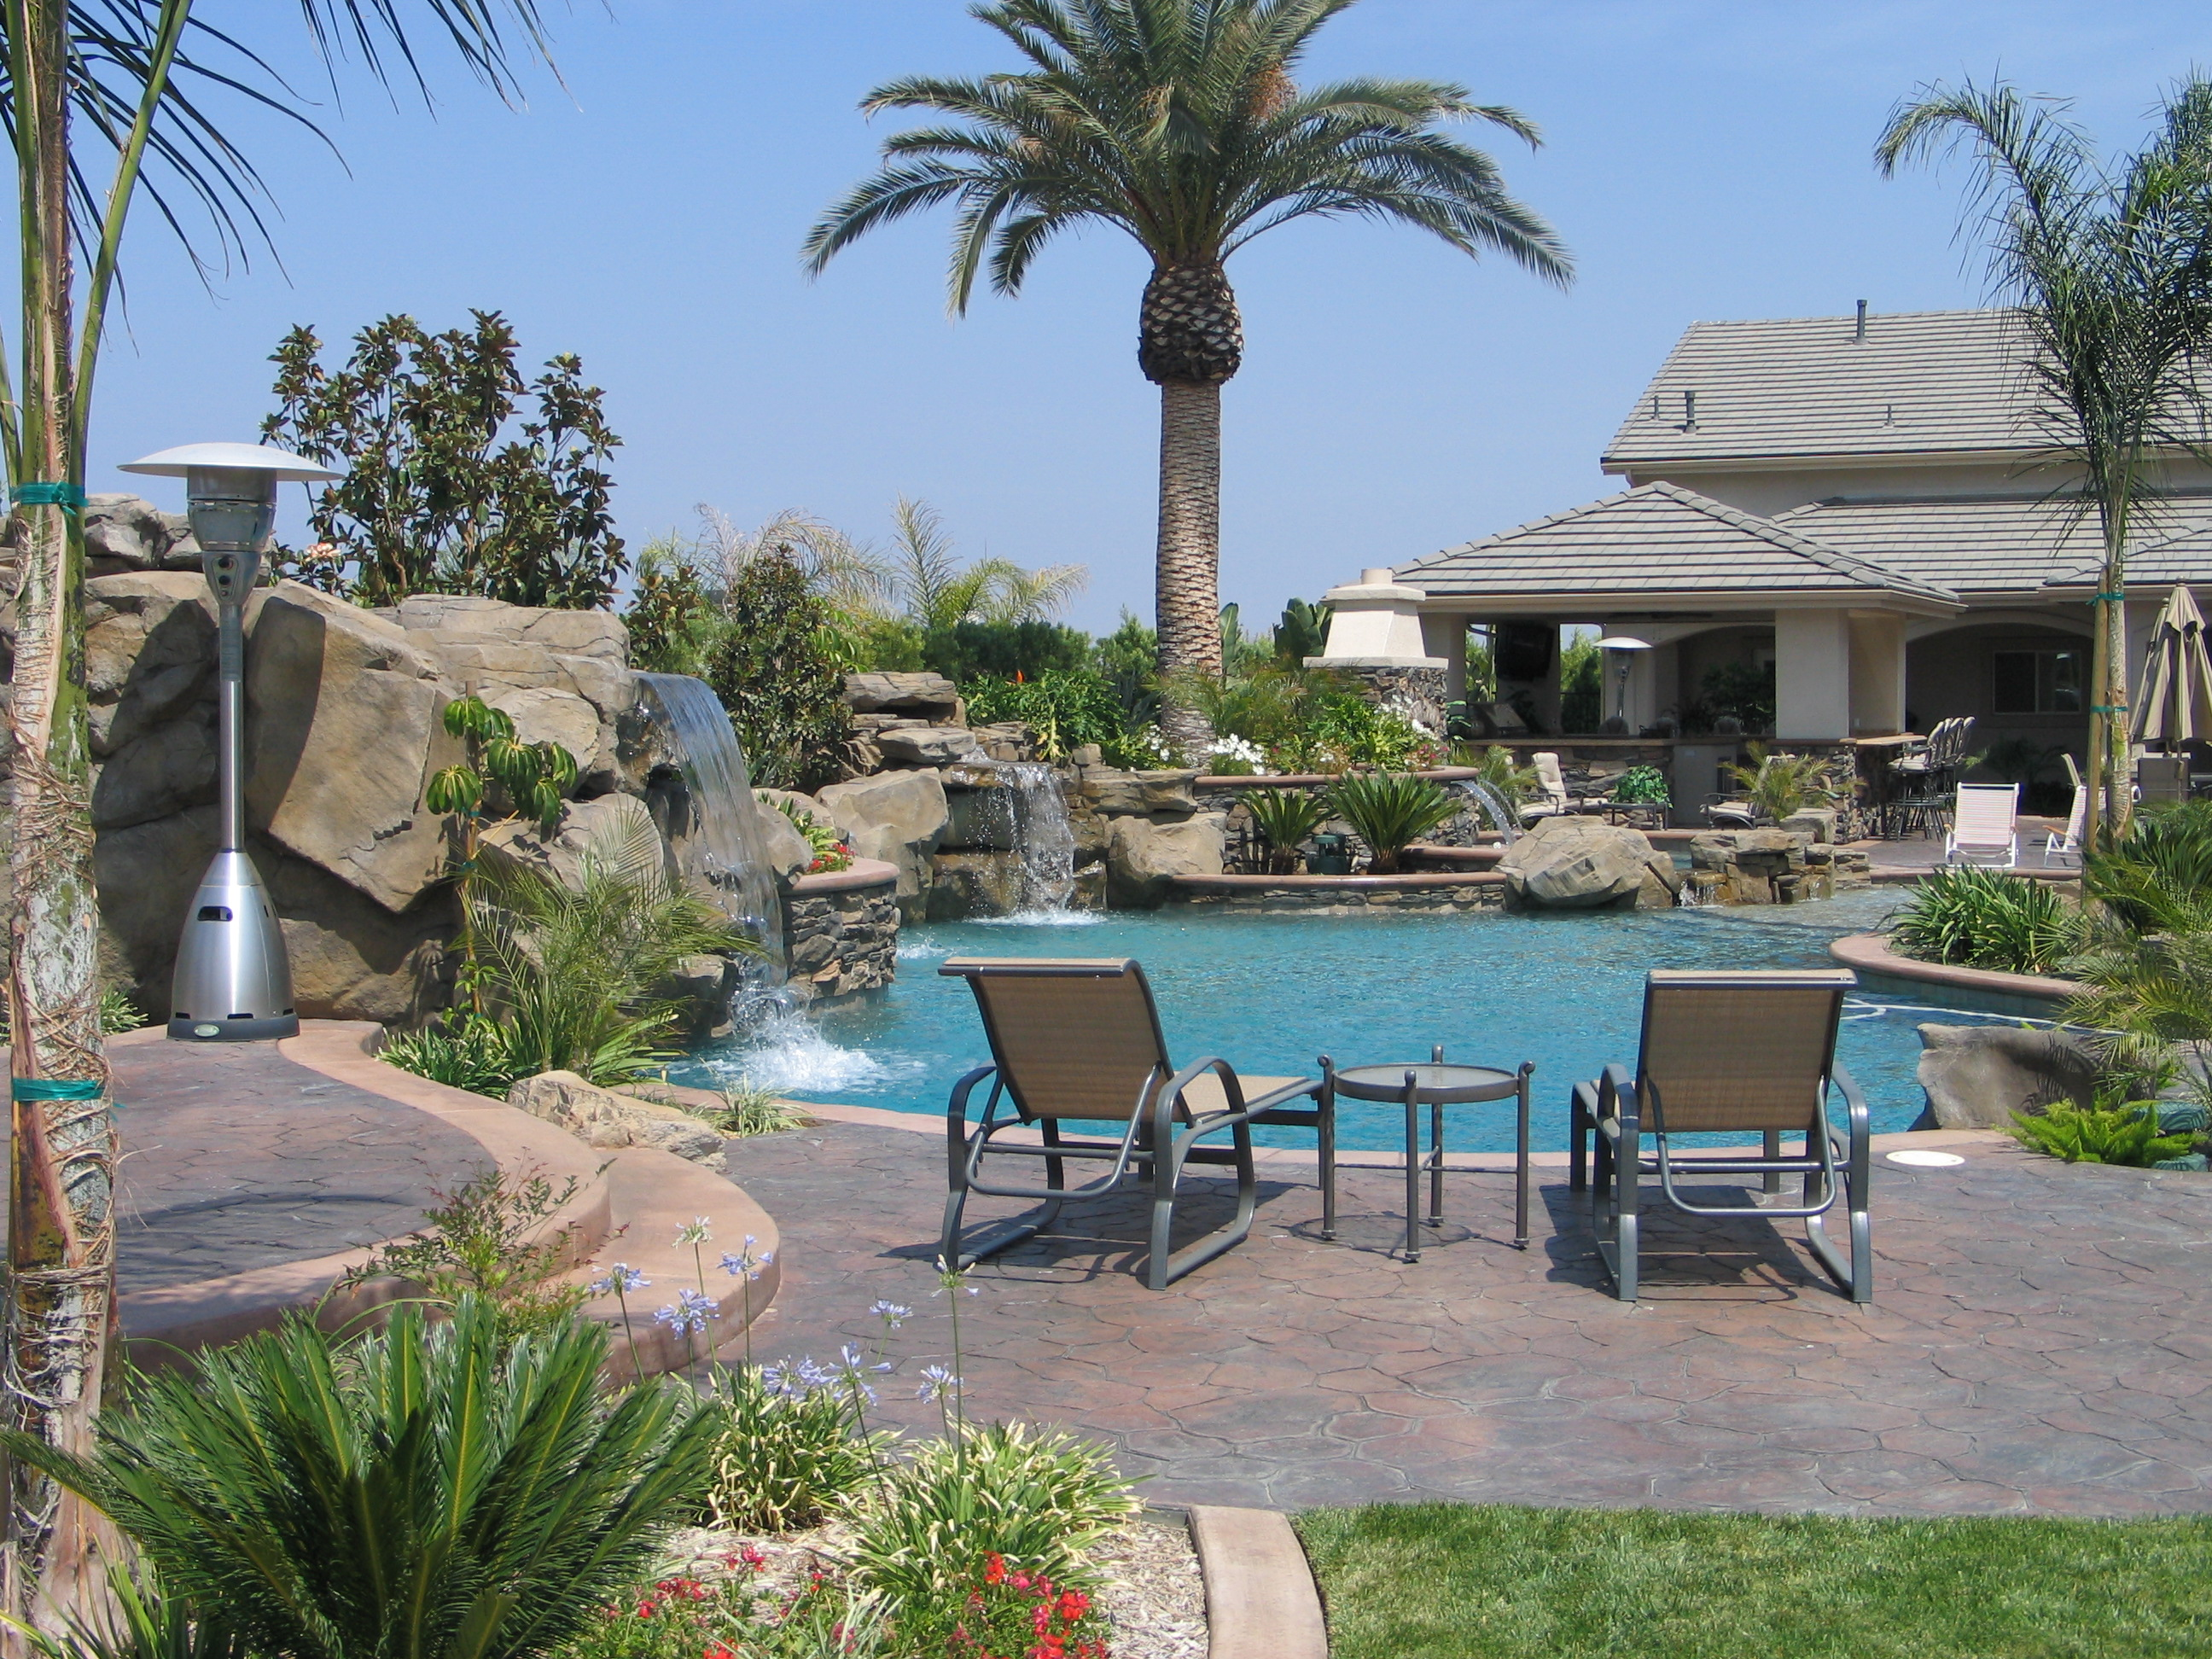 Amazing backyard pools large and beautiful photos photo for Pictures of backyard pools